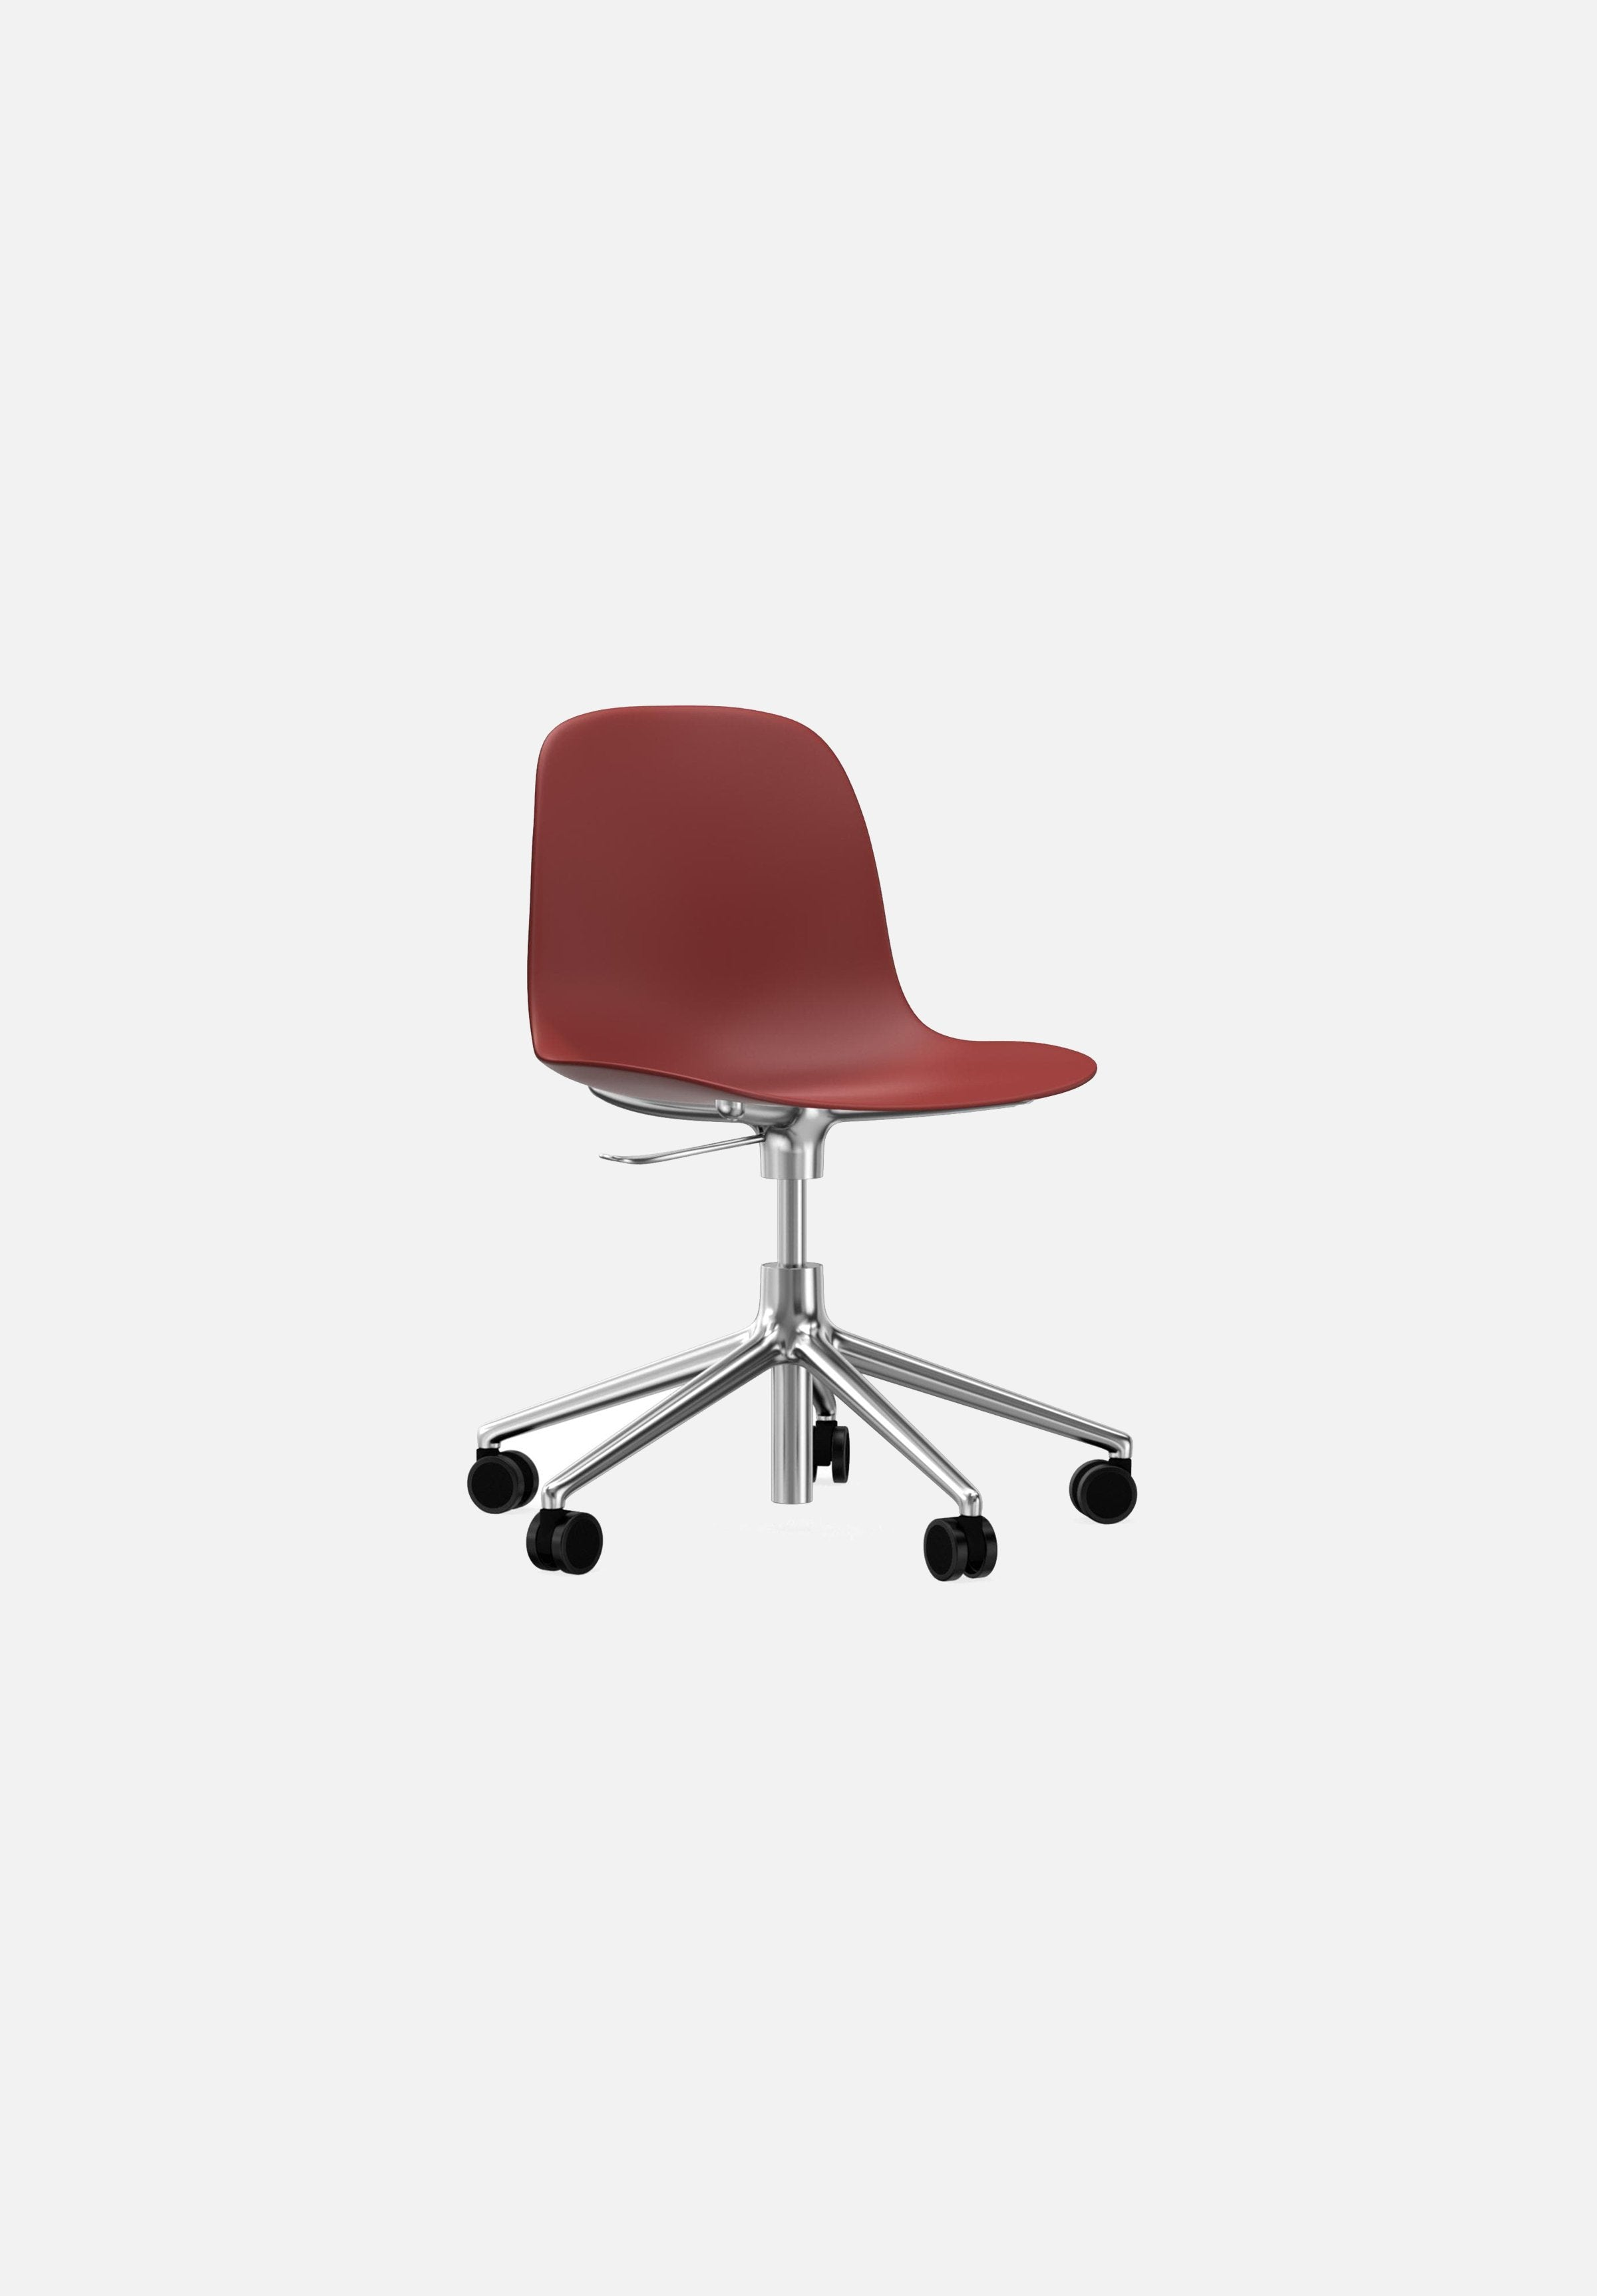 Form Chair — Swivel Gaslift-Simon Legald-Normann Copenhagen-Red-Polished Aluminum-Average-canada-design-store-danish-denmark-furniture-interior